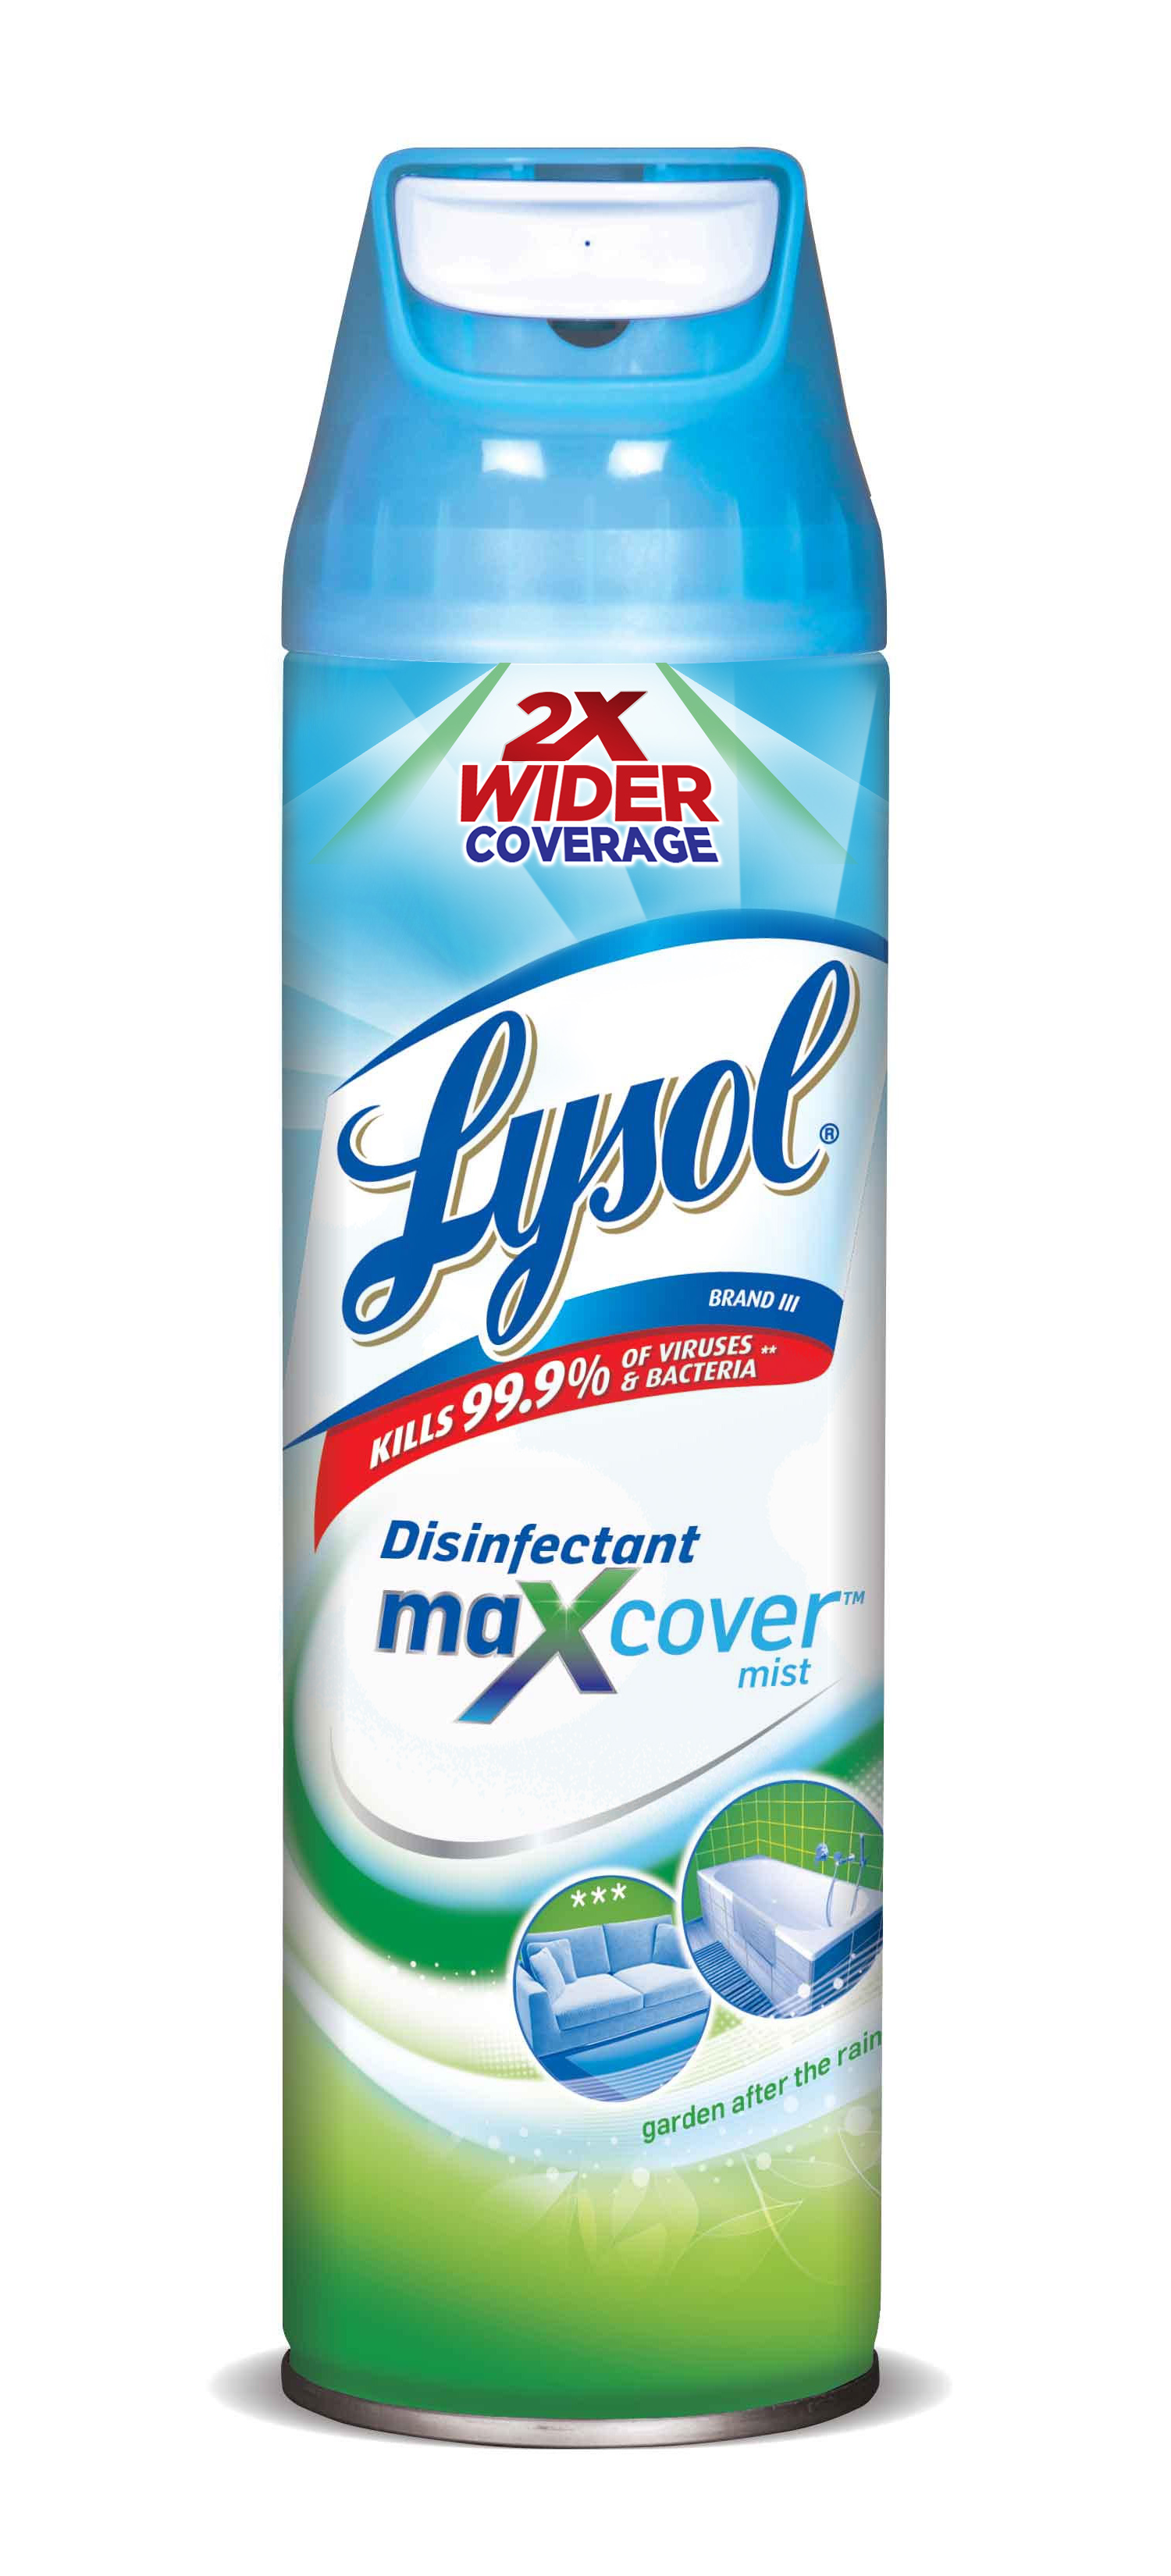 LYSOL® Disinfectant Max Cover Mist - Garden after the Rain